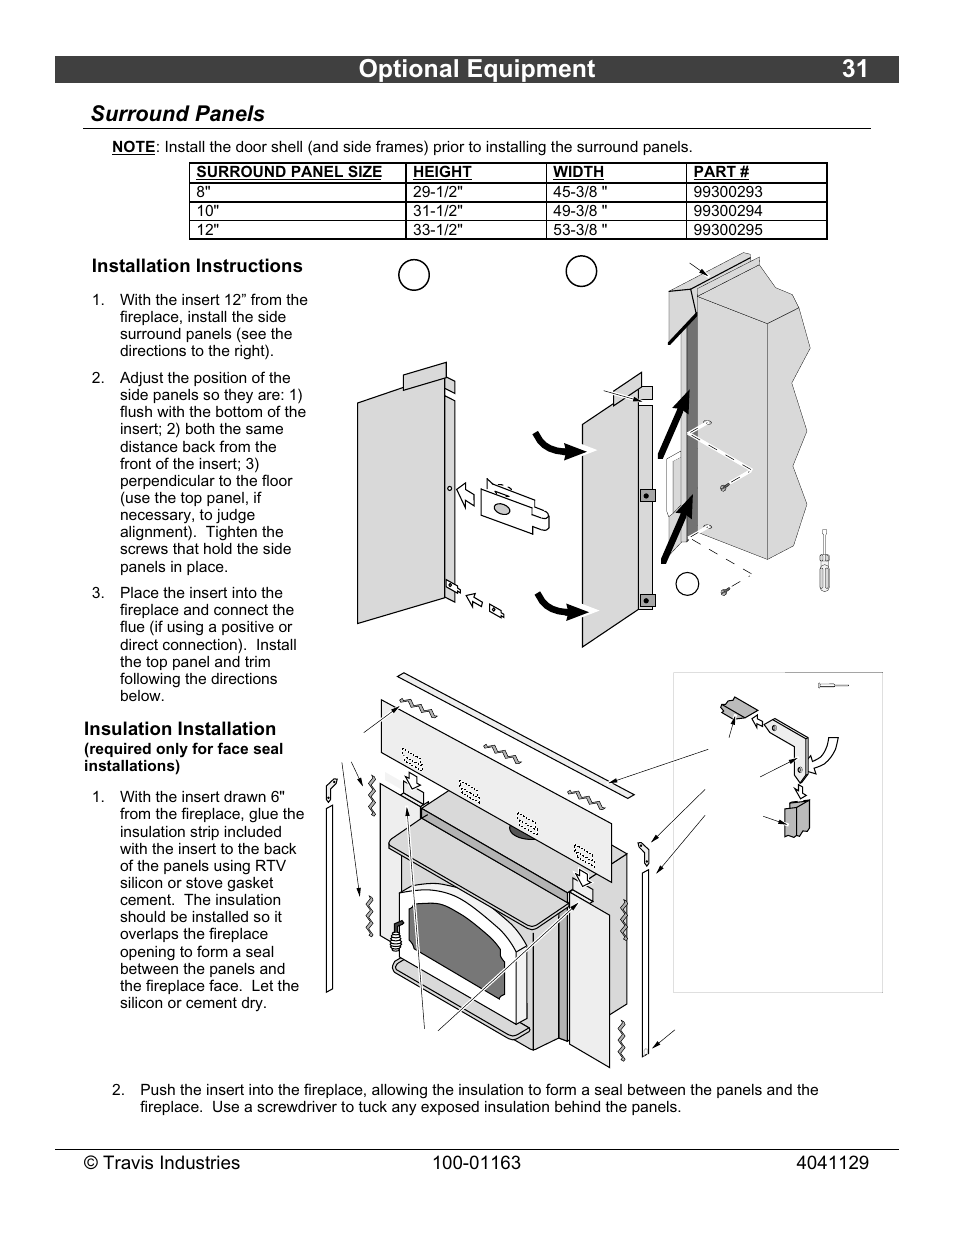 How To Install A Panel Manual Guide